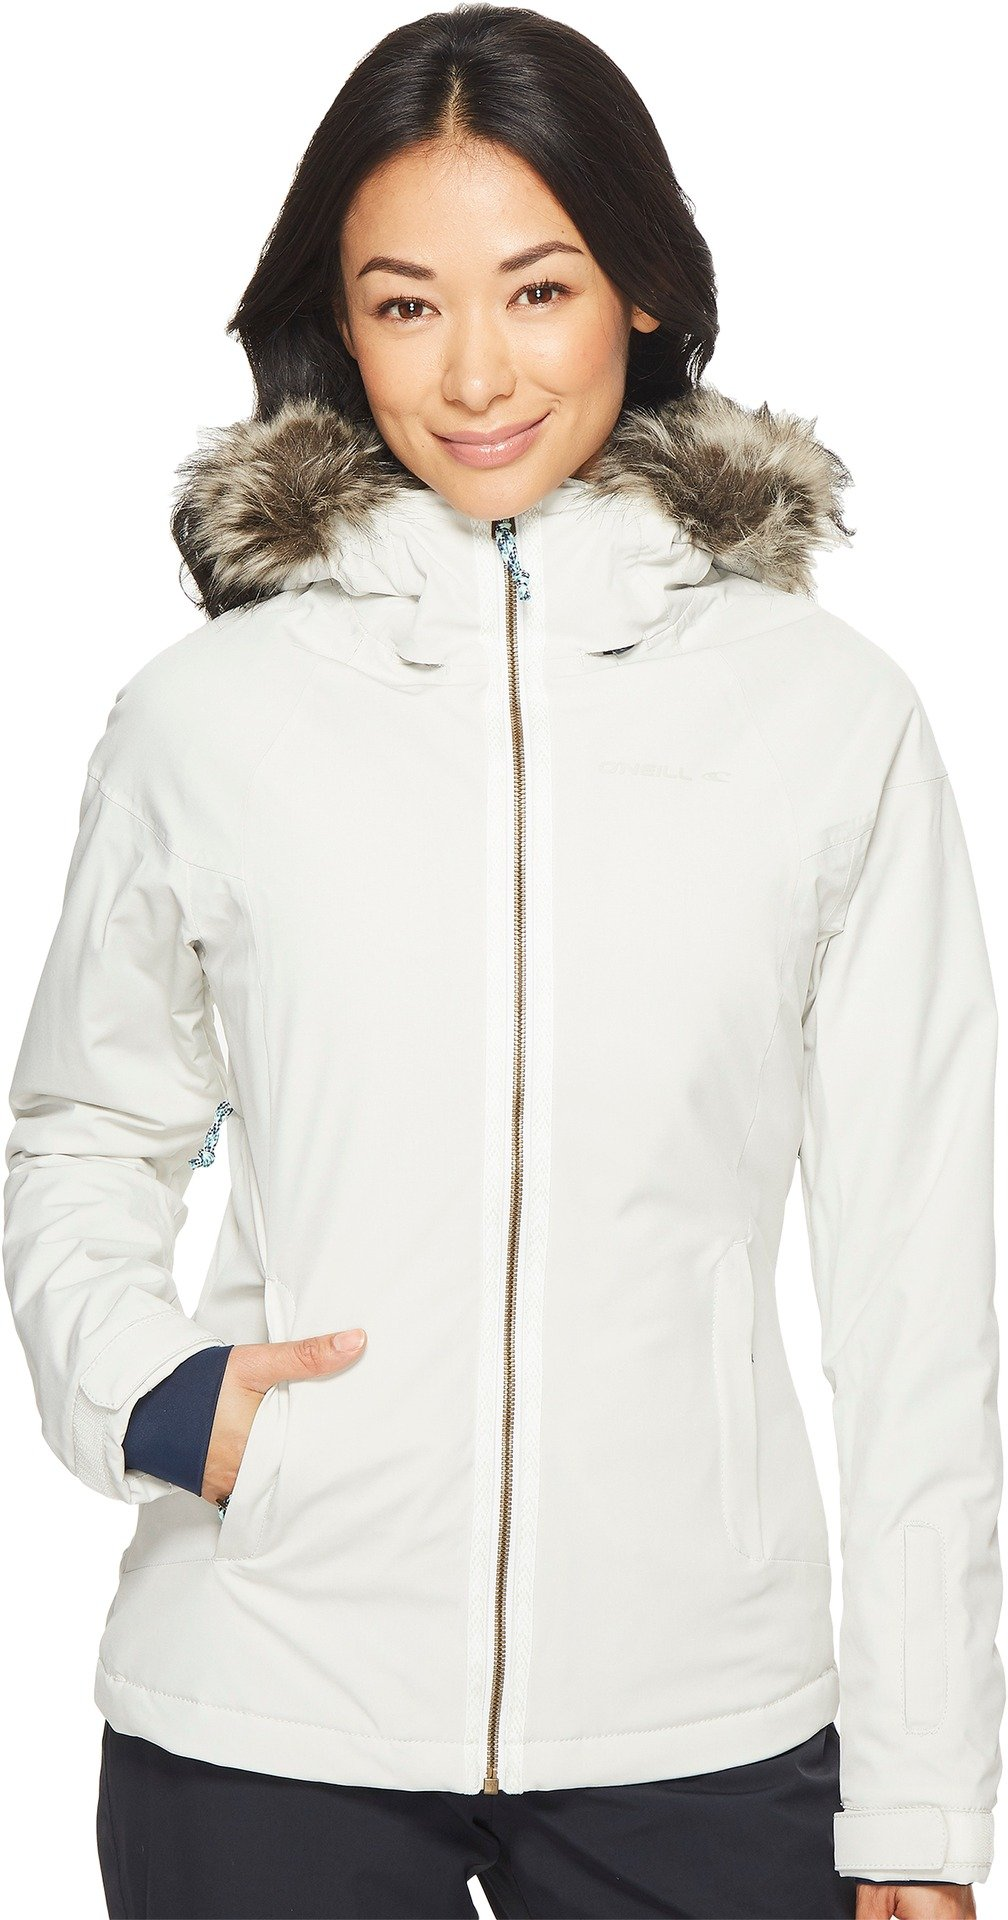 O'Neill Womens Curve Jacket Birch XS (US 0) One Size